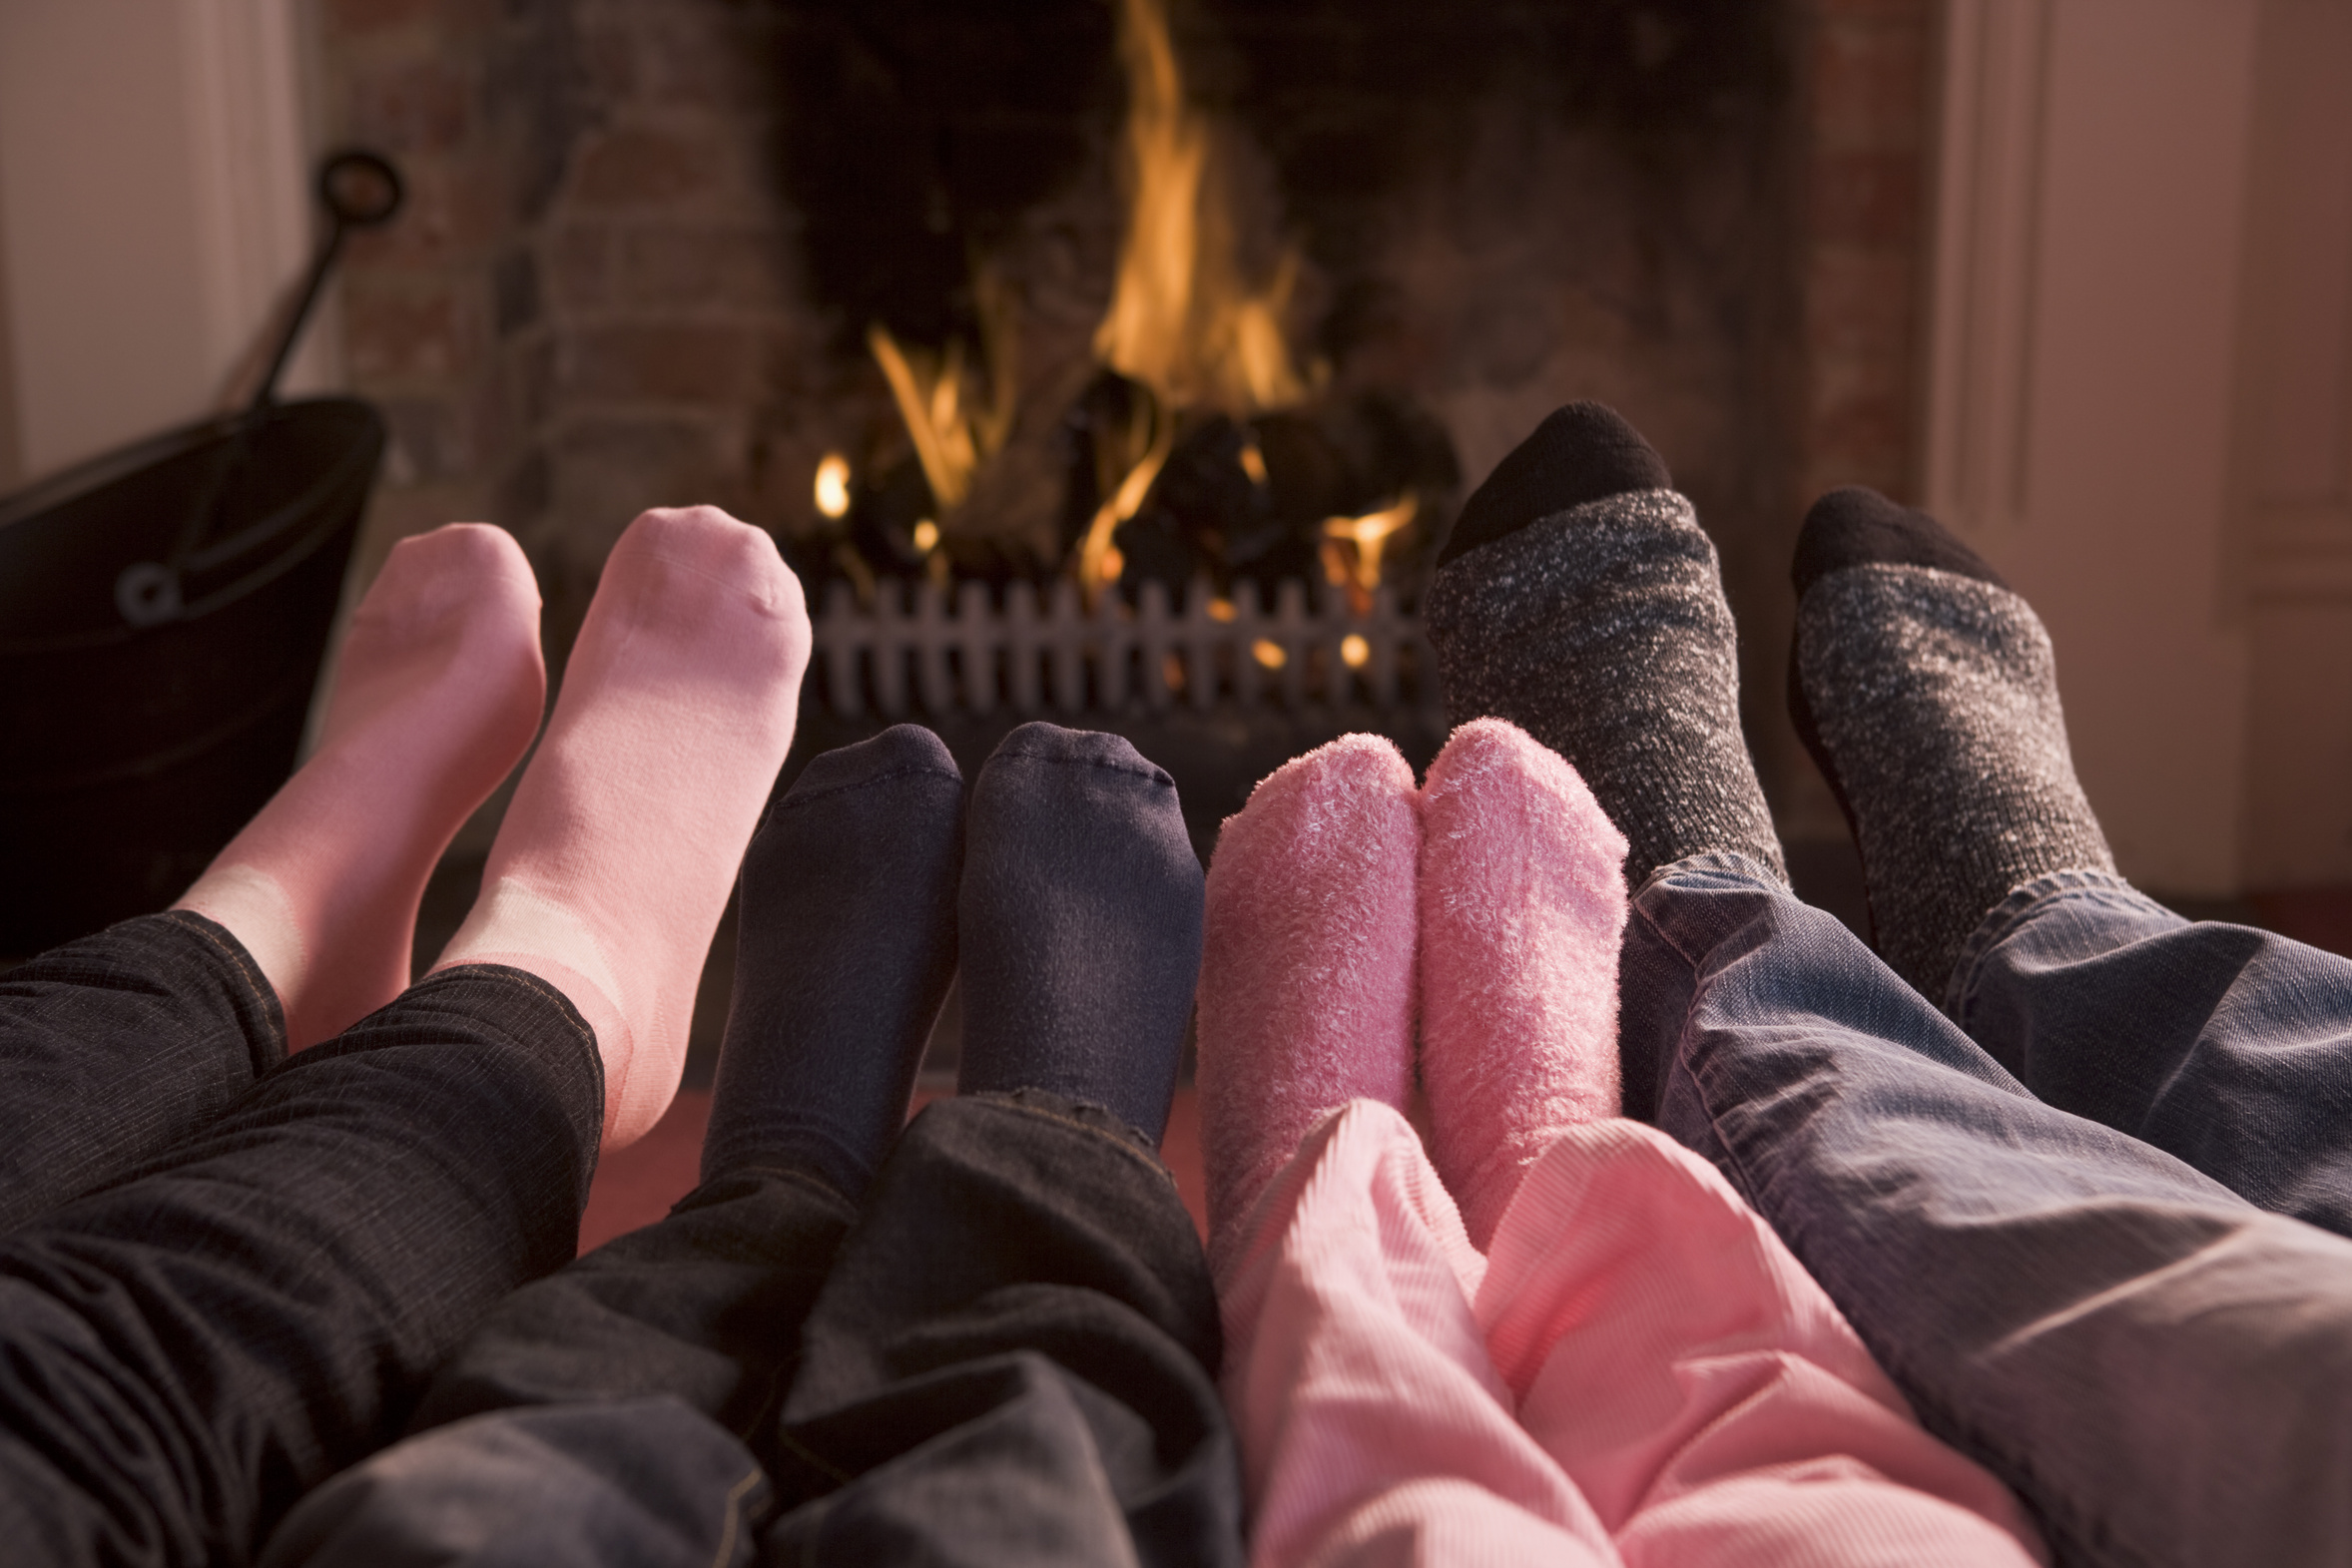 Feet up by the fire